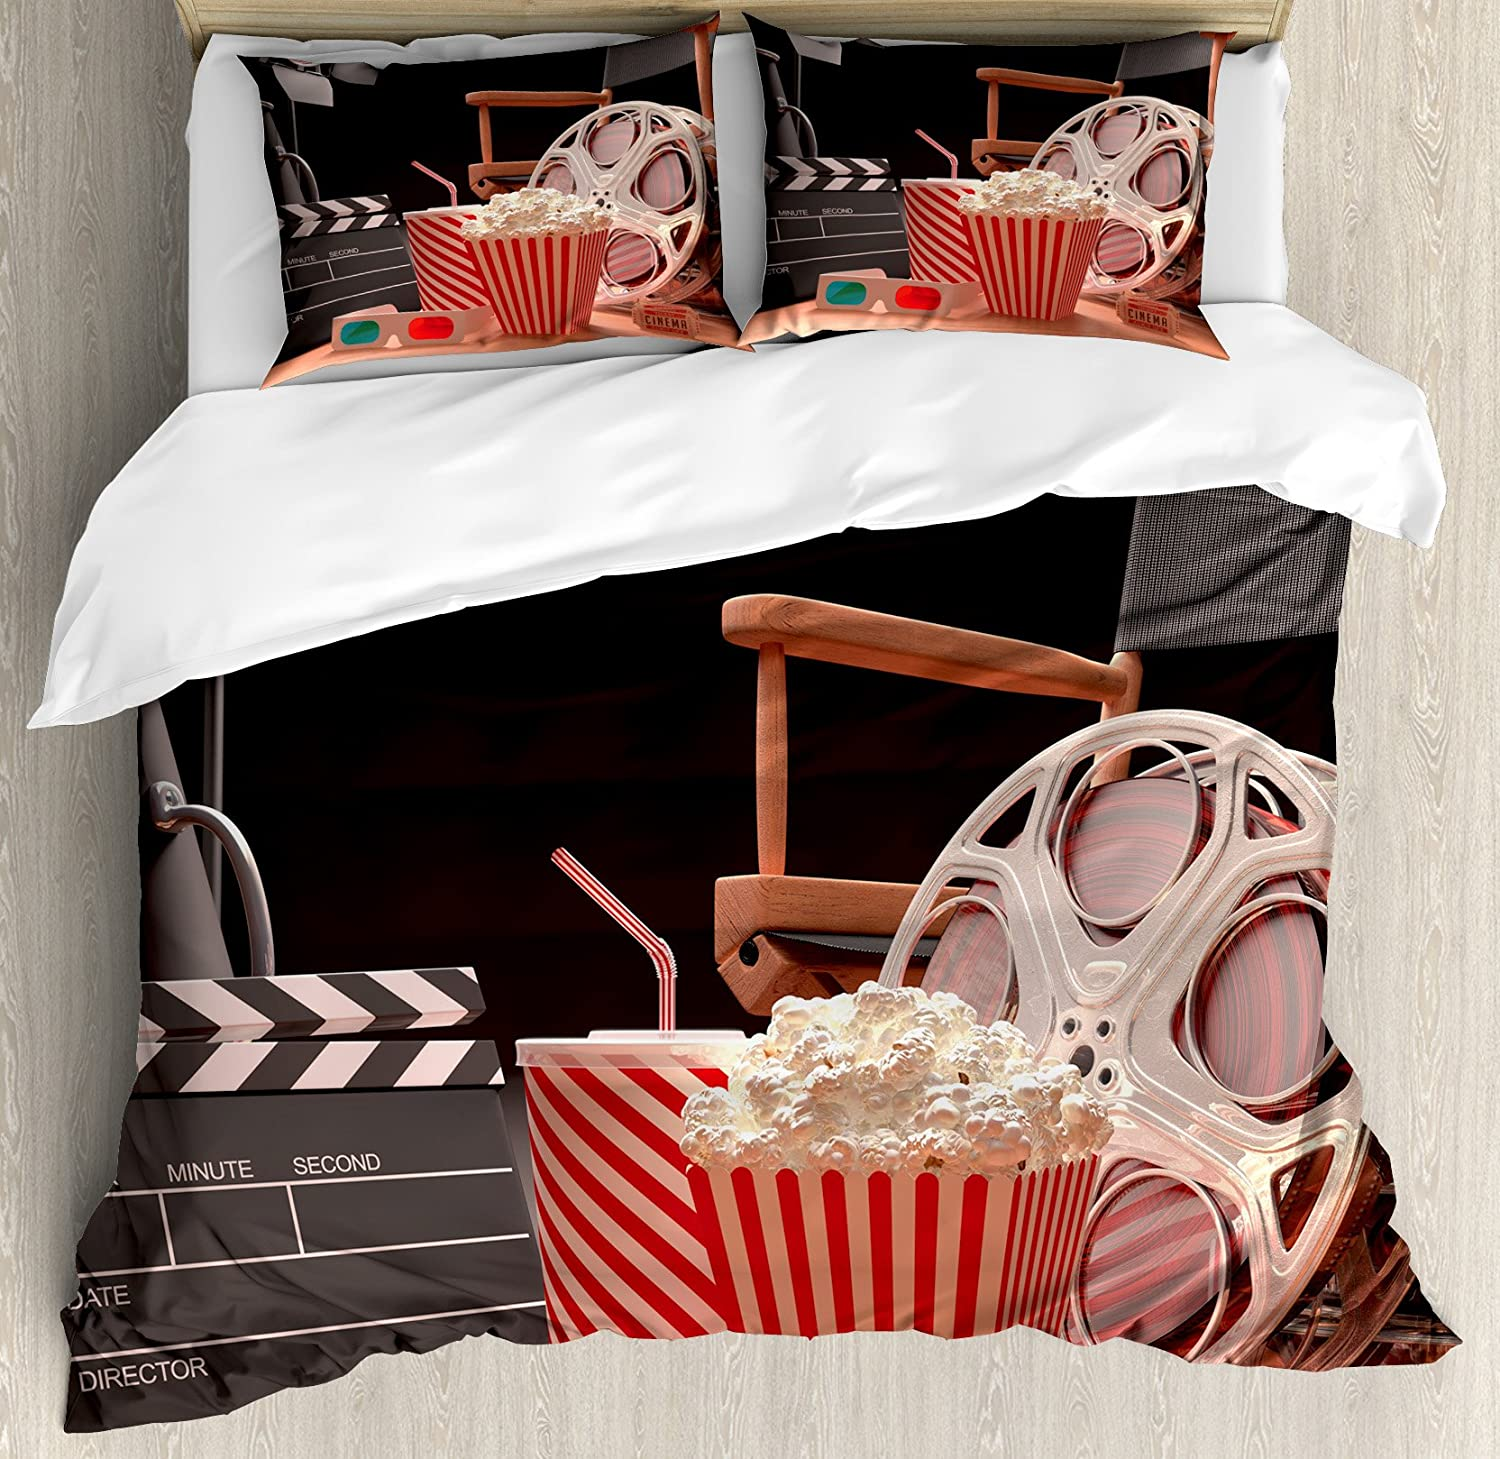 Ambesonne Movie Theater Duvet Cover Set, Objects of The Film Industry Hollywood Motion Picture Cinematography Concept, Decorative 3 Piece Bedding Set with 2 Pillow Shams, Queen Size, Red Black